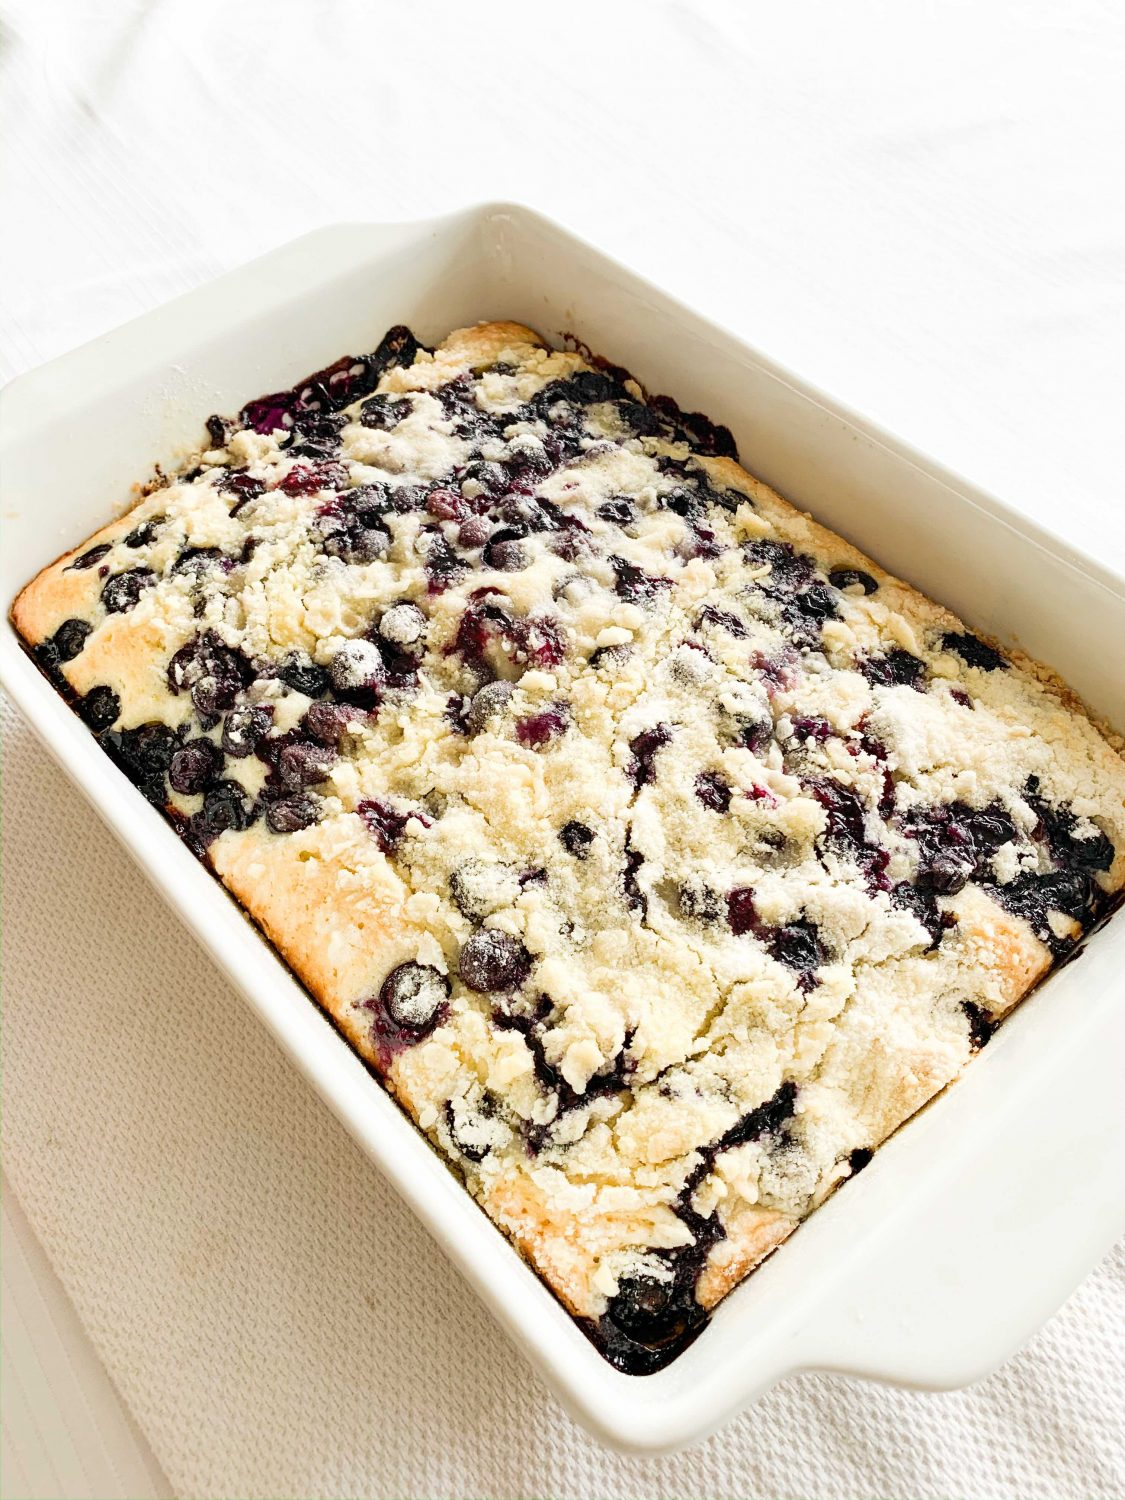 The Motherchic blueberry snack cake